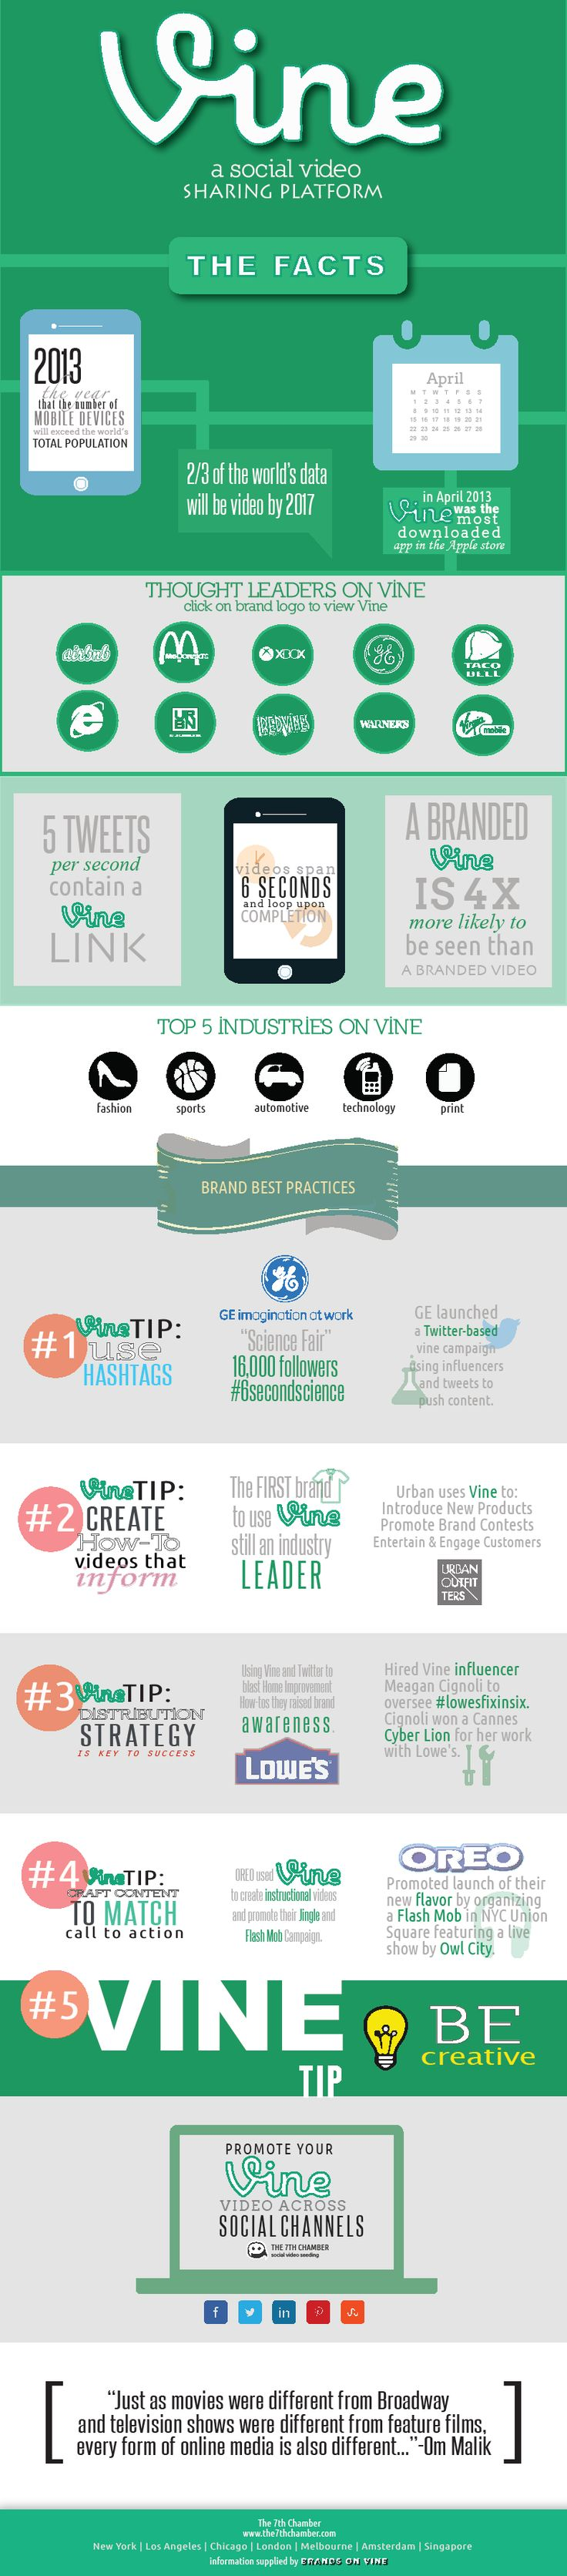 Some key #Vine stats and best practices #infographic #App